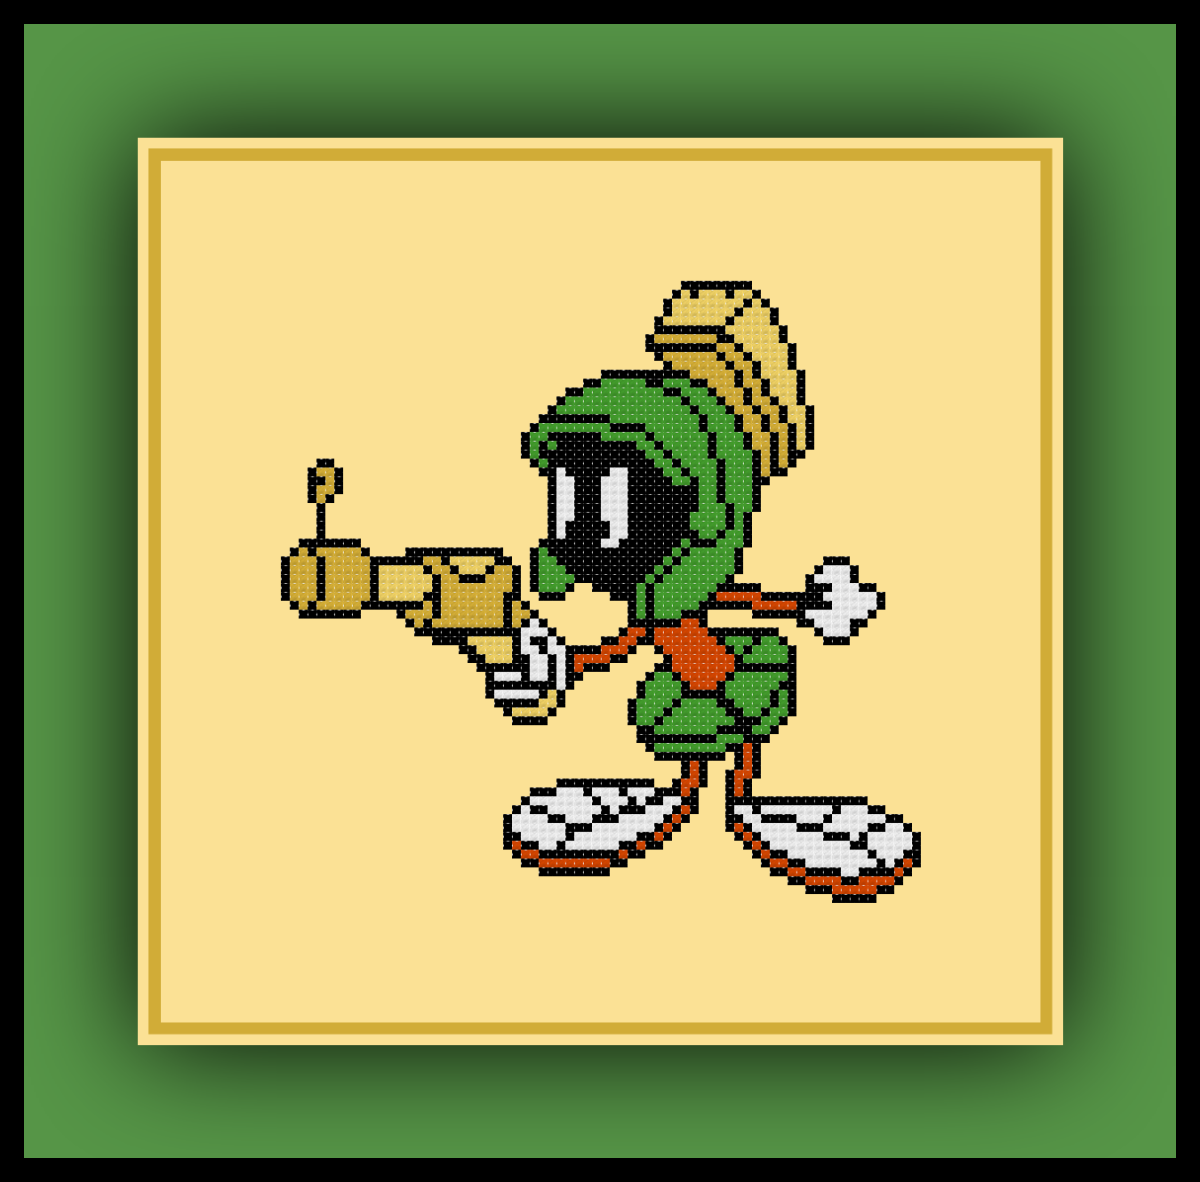 Marvin the Martian Cross Stitch Pattern Looney Tunes